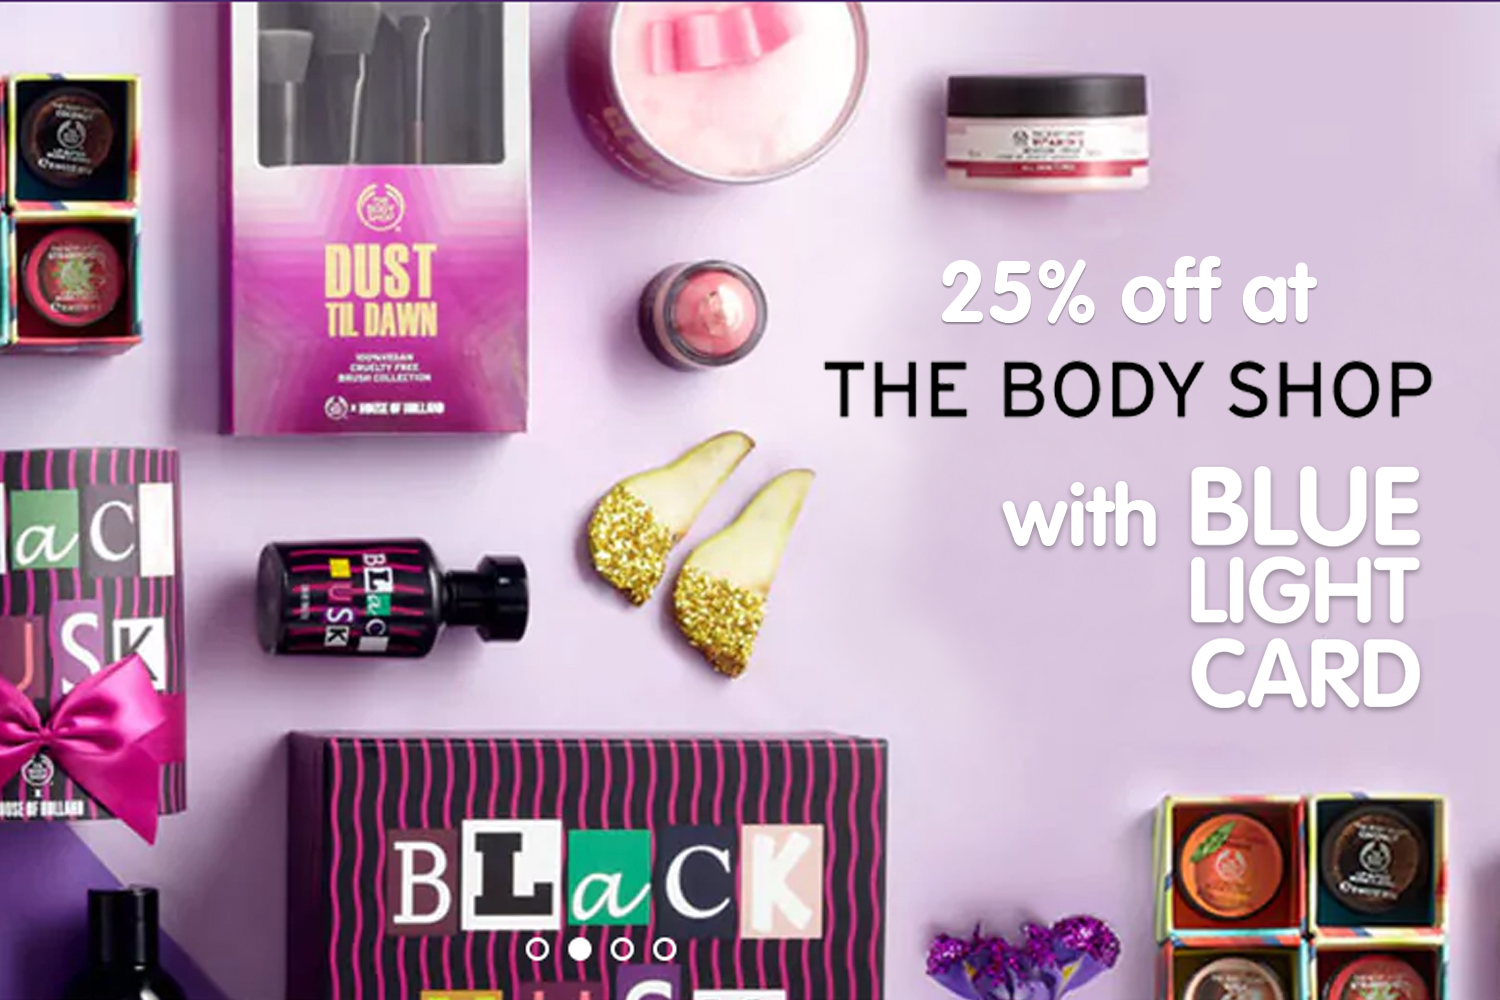 25% off at The Body Shop in store and online